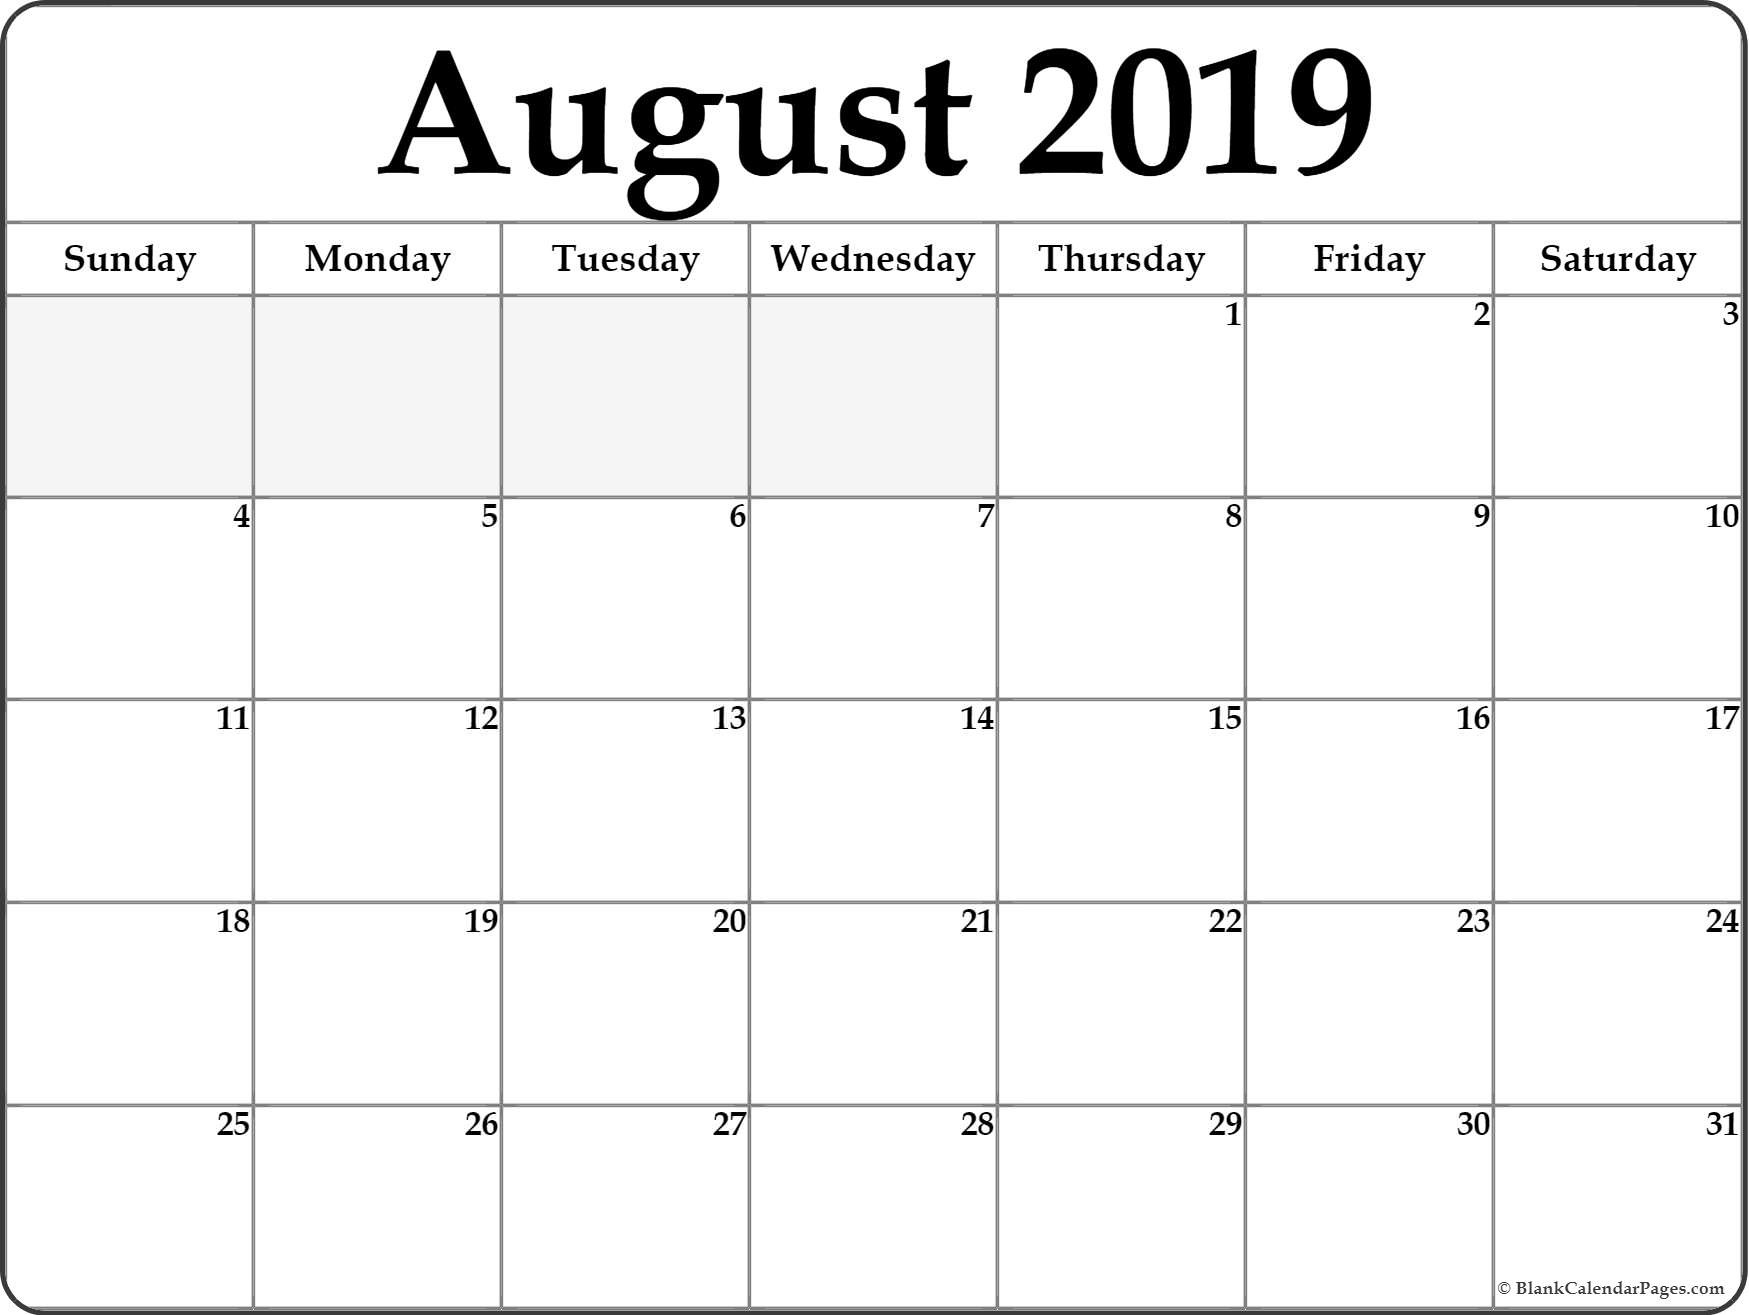 August 2019 Calendar | Free Printable Monthly Calendars  Blank Full Page Calendar Printable June